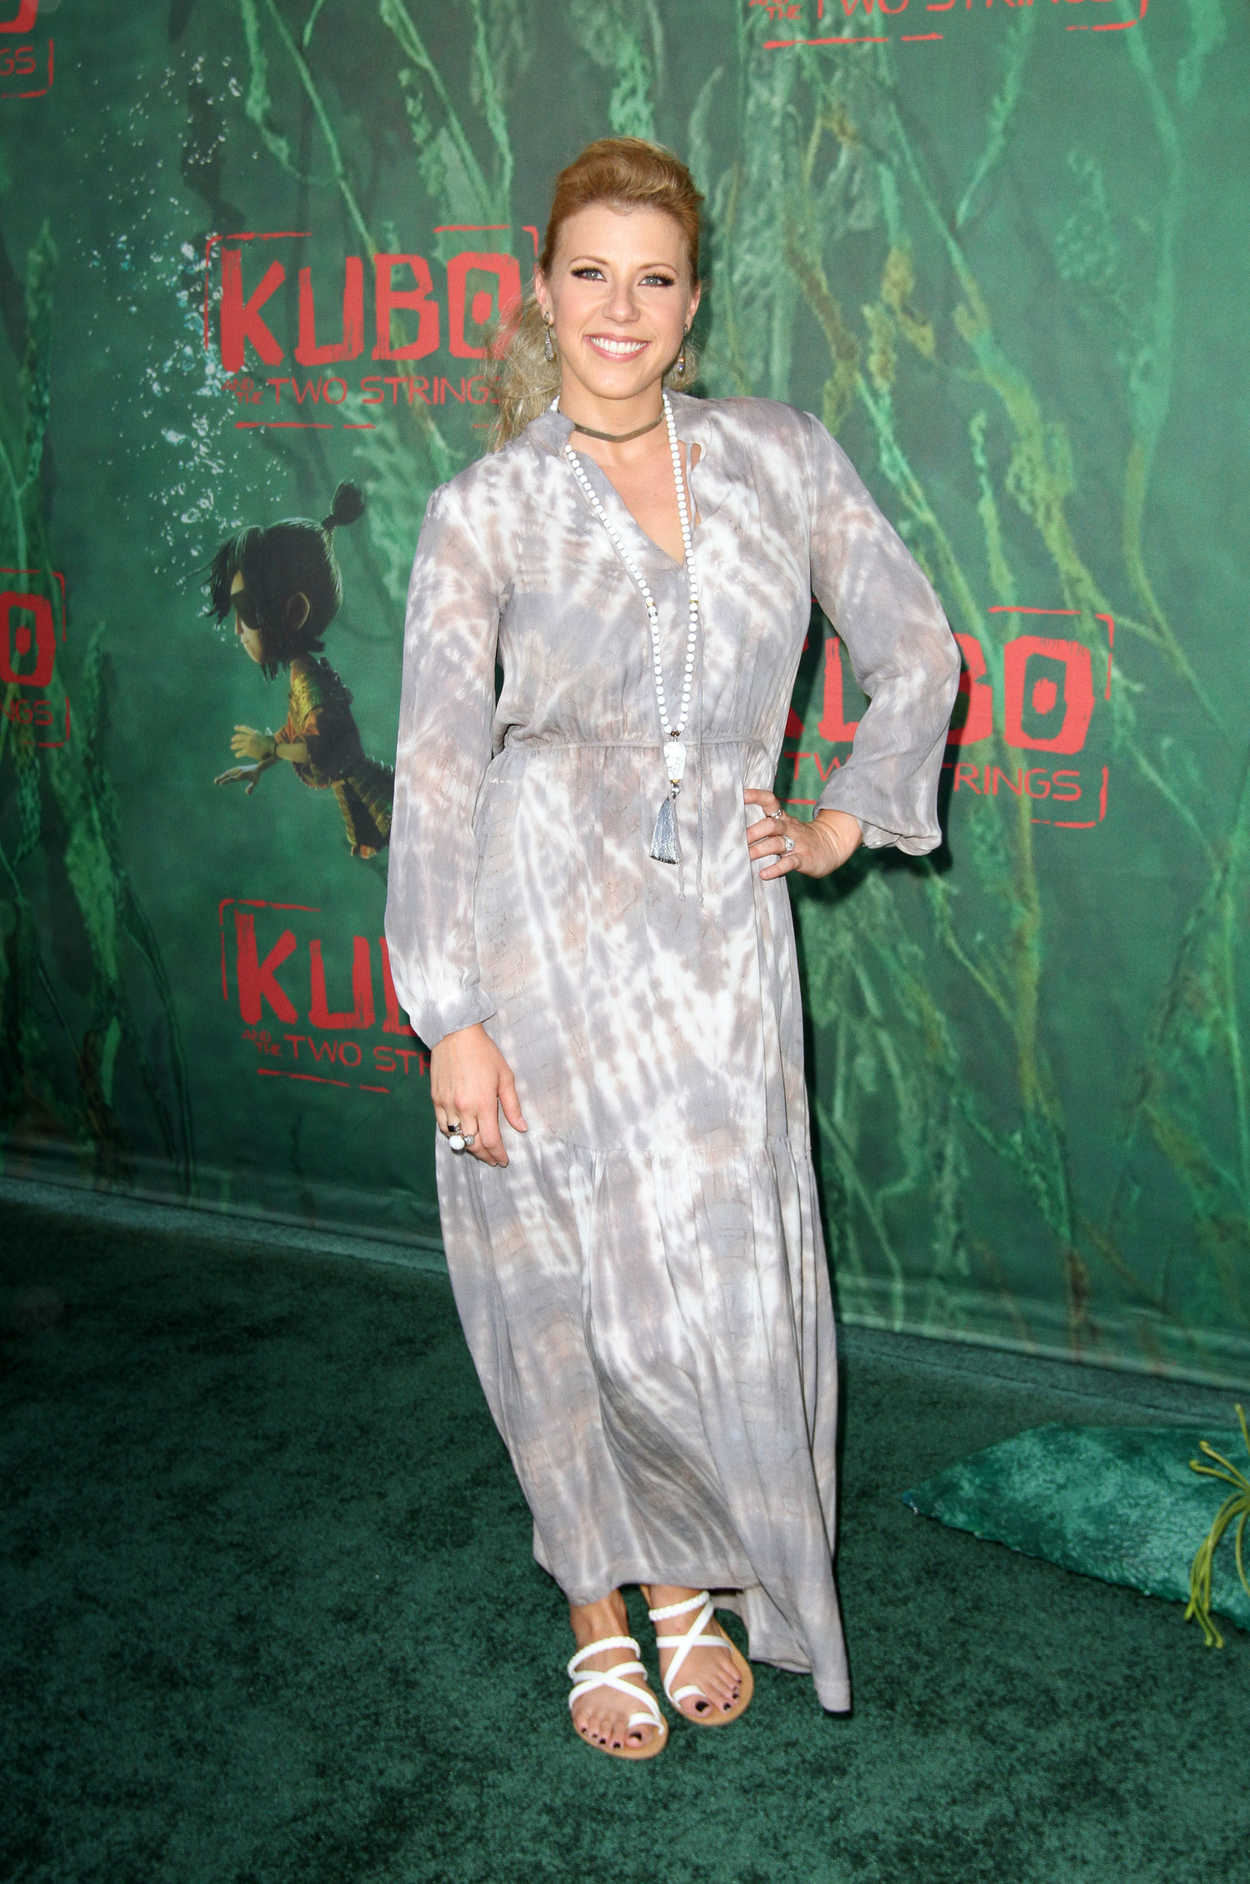 Jodie Sweetin At The Kubo And The Two Strings Premiere In Los